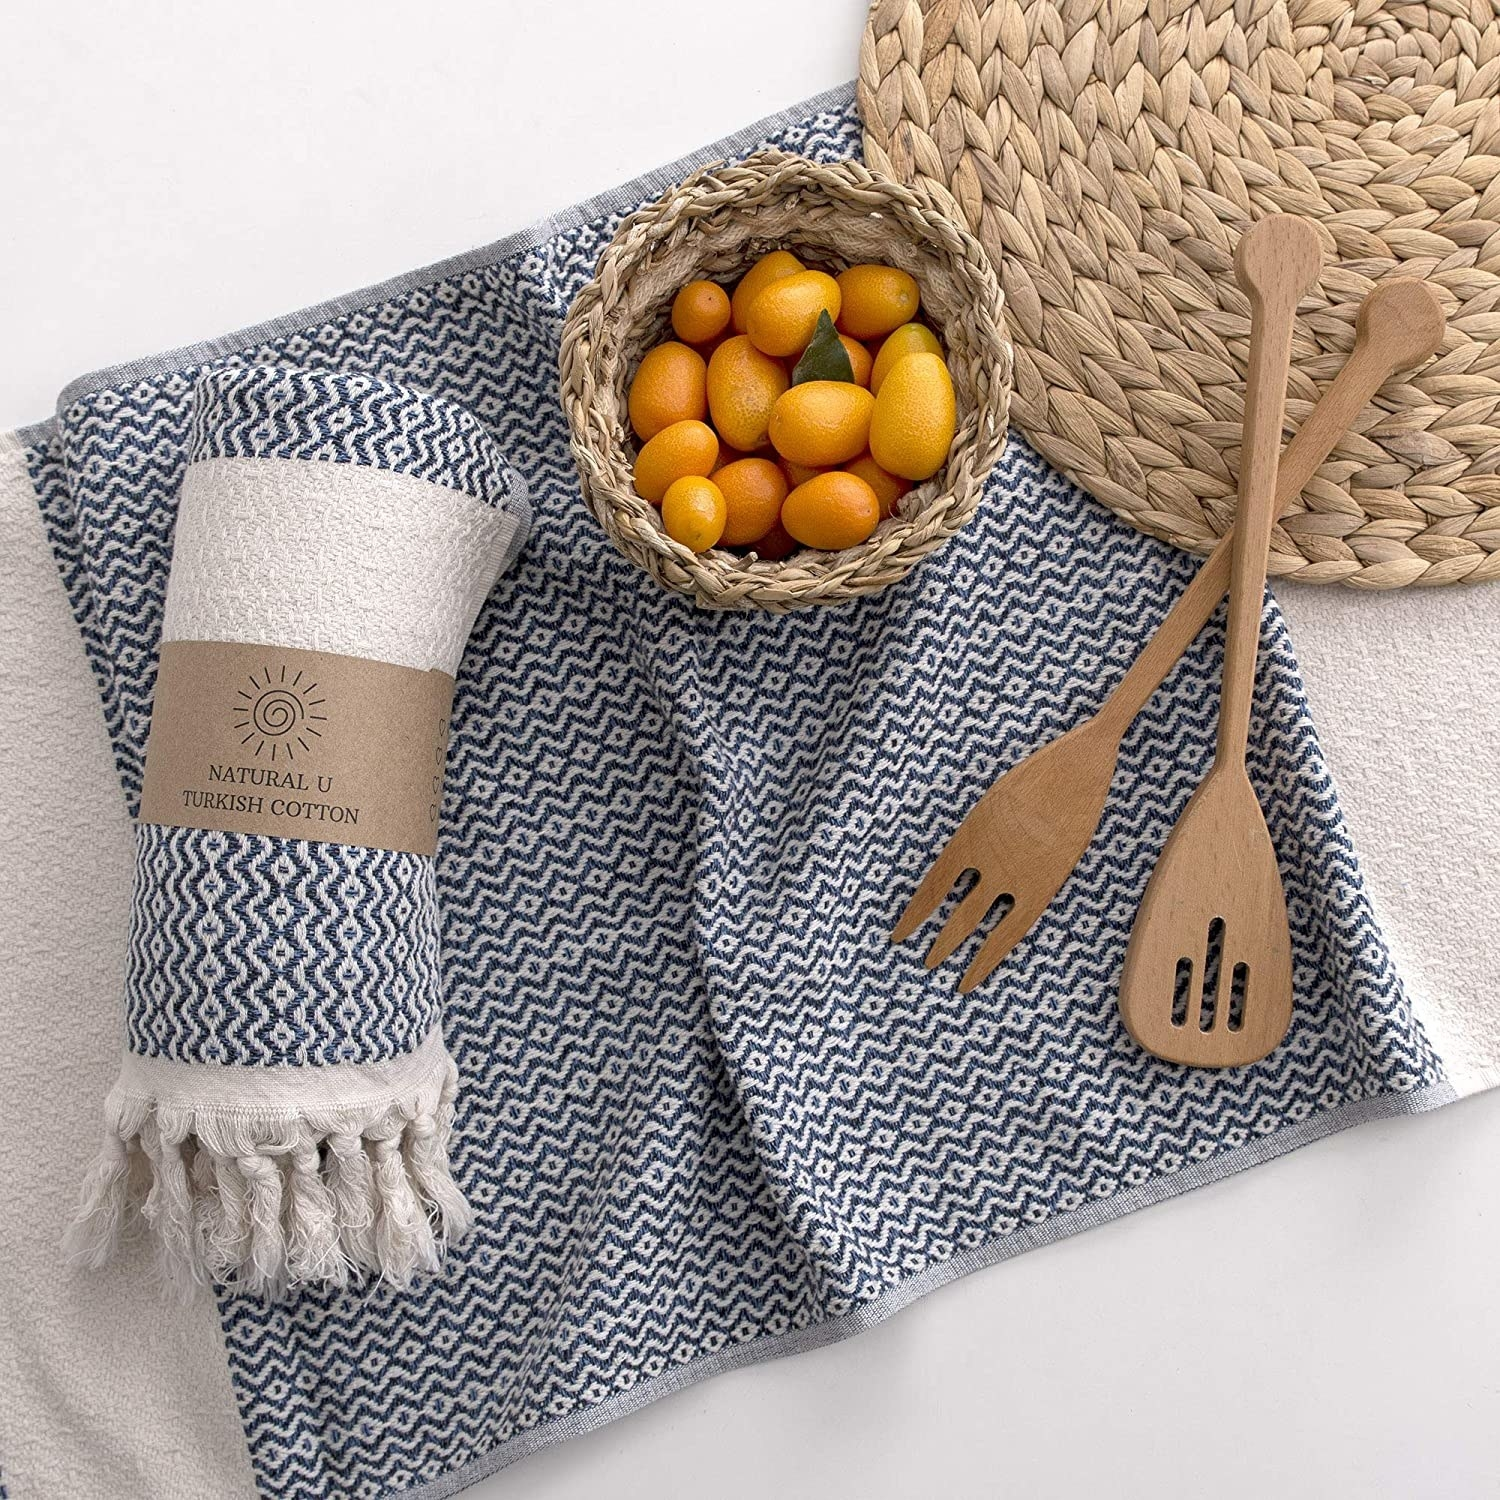 A flatlay of the turkish towels next to a bowl of citrus and some kitchen utensils